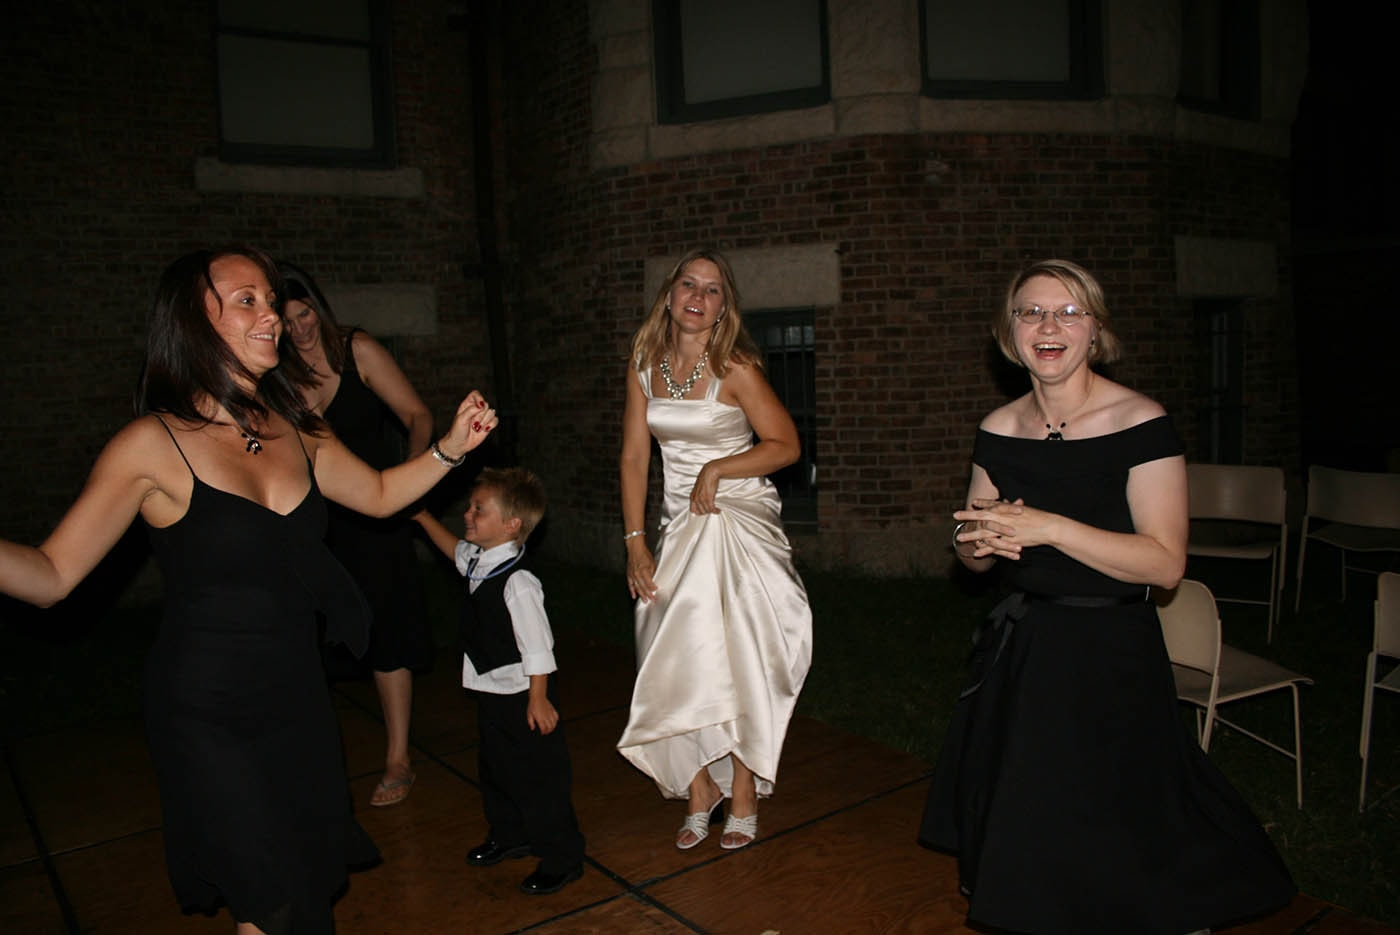 Dancing at Jen and Dale's Glessner House Wedding in Chicago, Illinois.